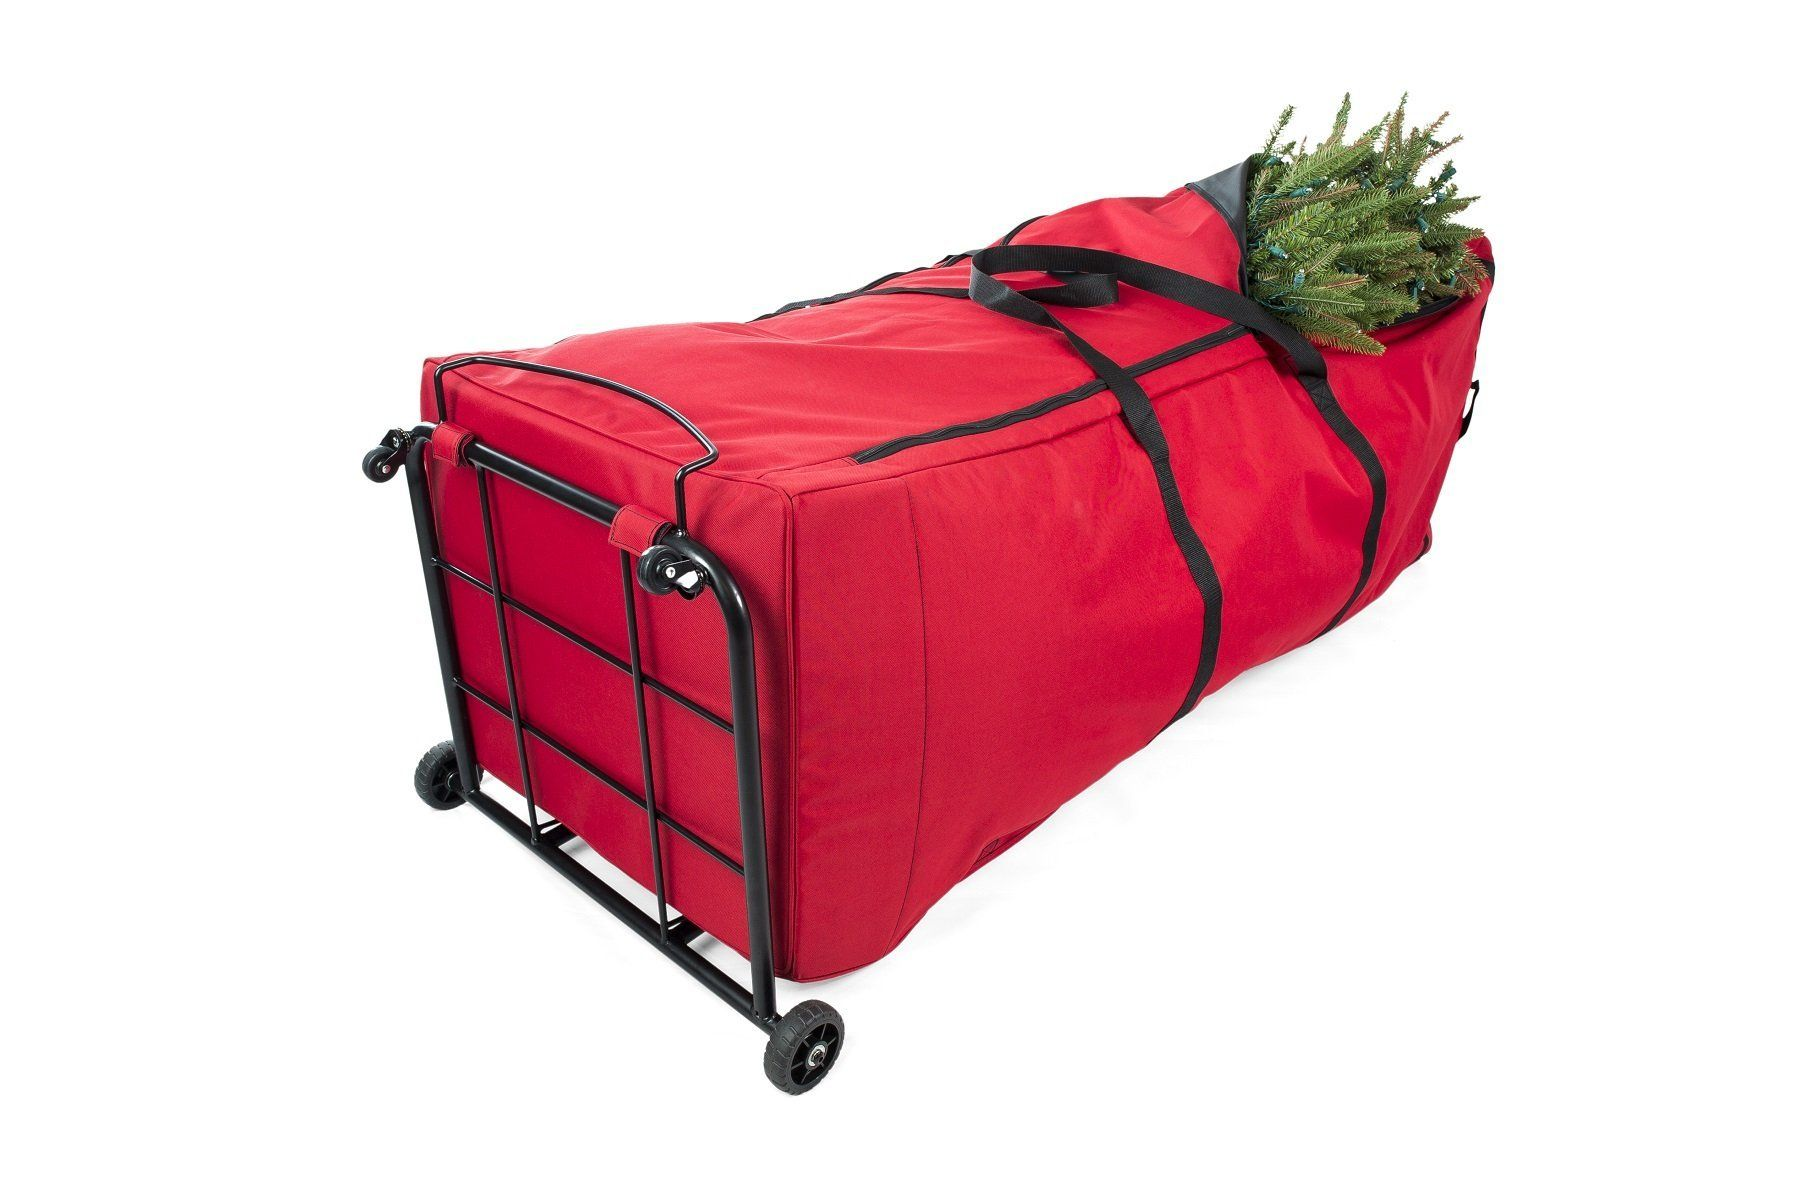 Santas Bags Upright 9 Ft Tree Storage Duffel Bag With Front Handle Bar And Rear Metal Handle Christmas Tree Storage Bag Tree Storage Bag Christmas Tree Storage